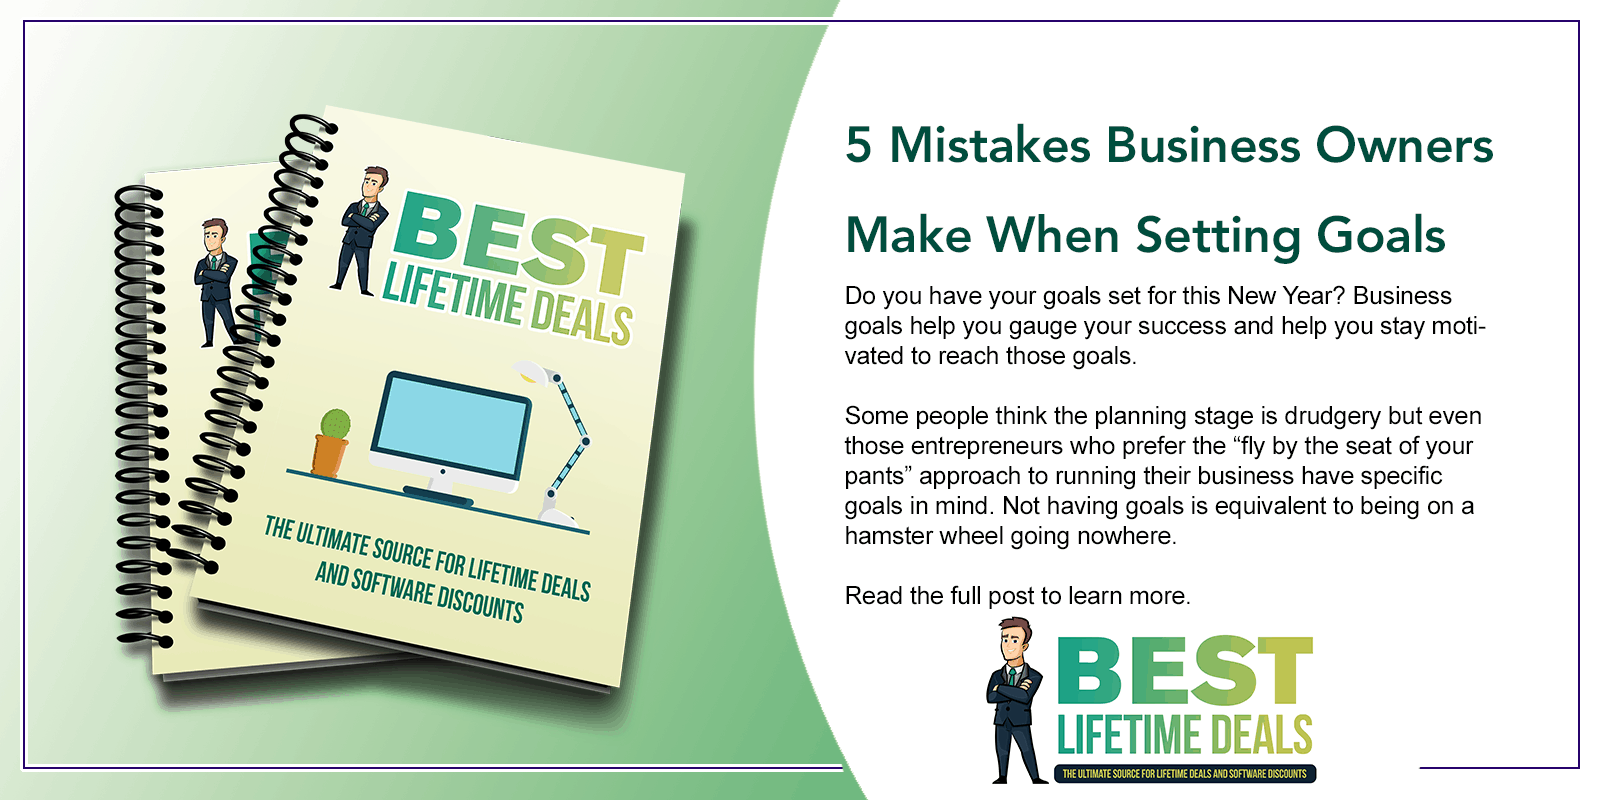 5 Mistakes Business Owners Make When Setting Goals Featured Image